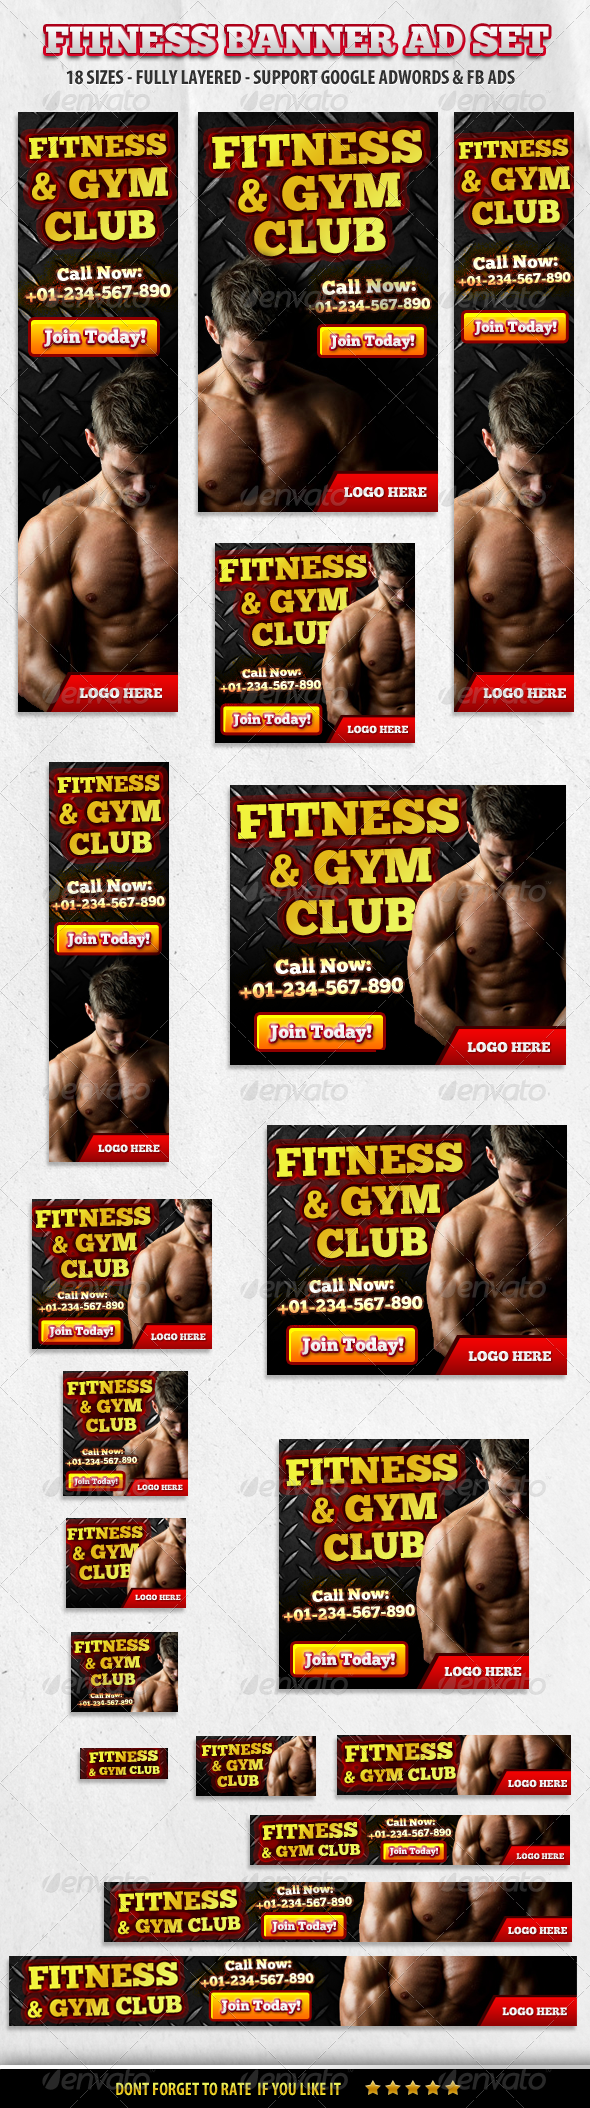 GraphicRiver Fitness & Gym Club Banner ad Set 5815731